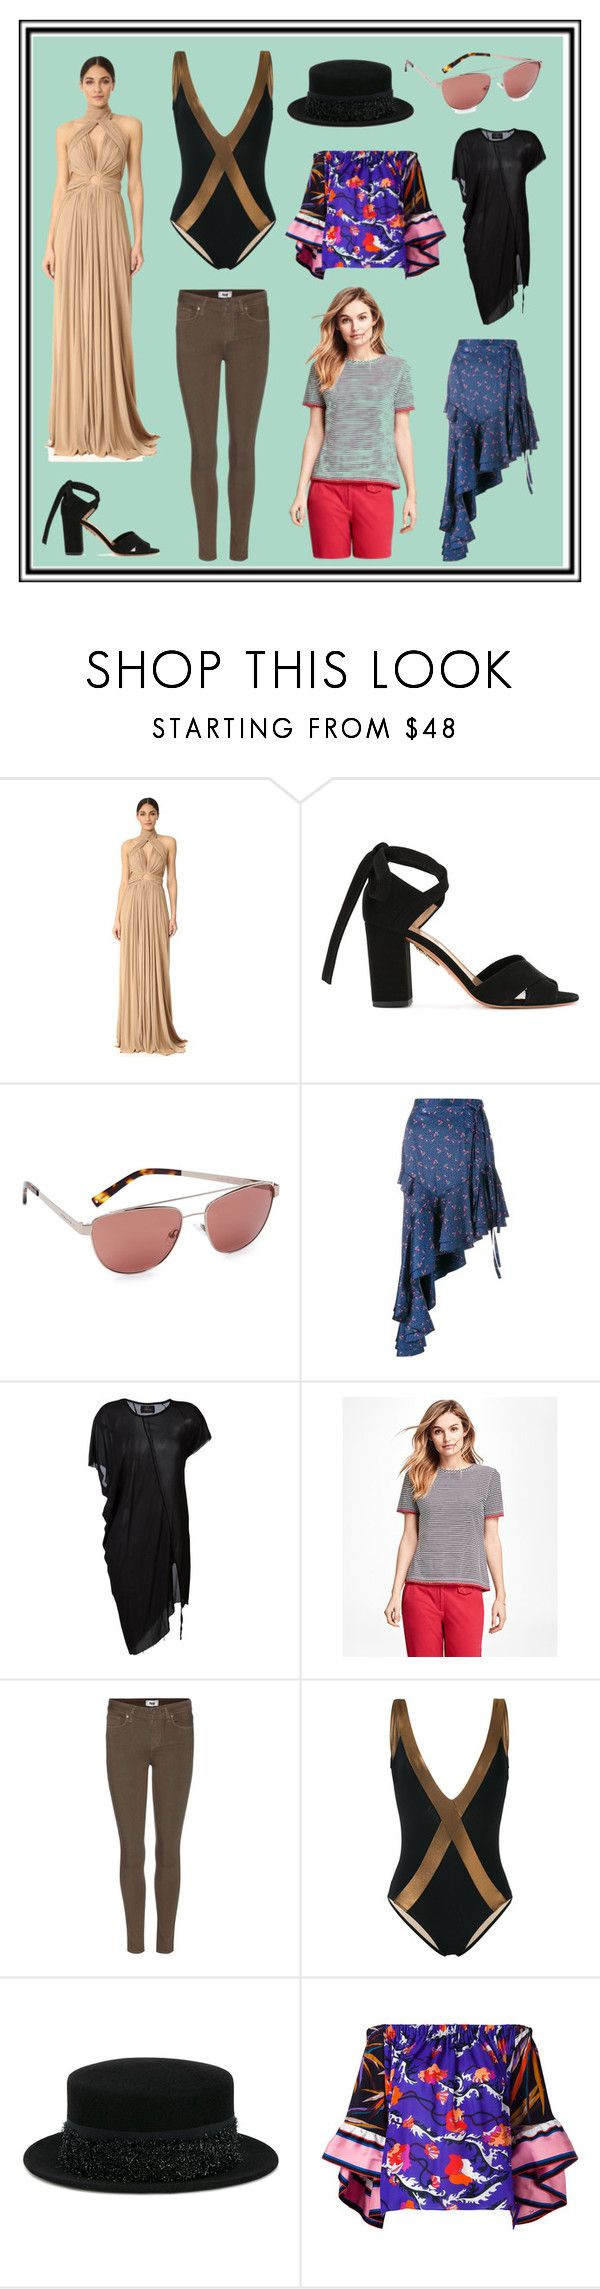 """Natural Life"" by cate-jennifer ❤ liked on Polyvore featuring Maria Lucia Hohan, Aquazzura, Kendall + Kylie, Sandy Liang, Lost & Found, Brooks Brothers, Paige Denim, Zeus+Dione, Maison Michel and Emilio Pucci"